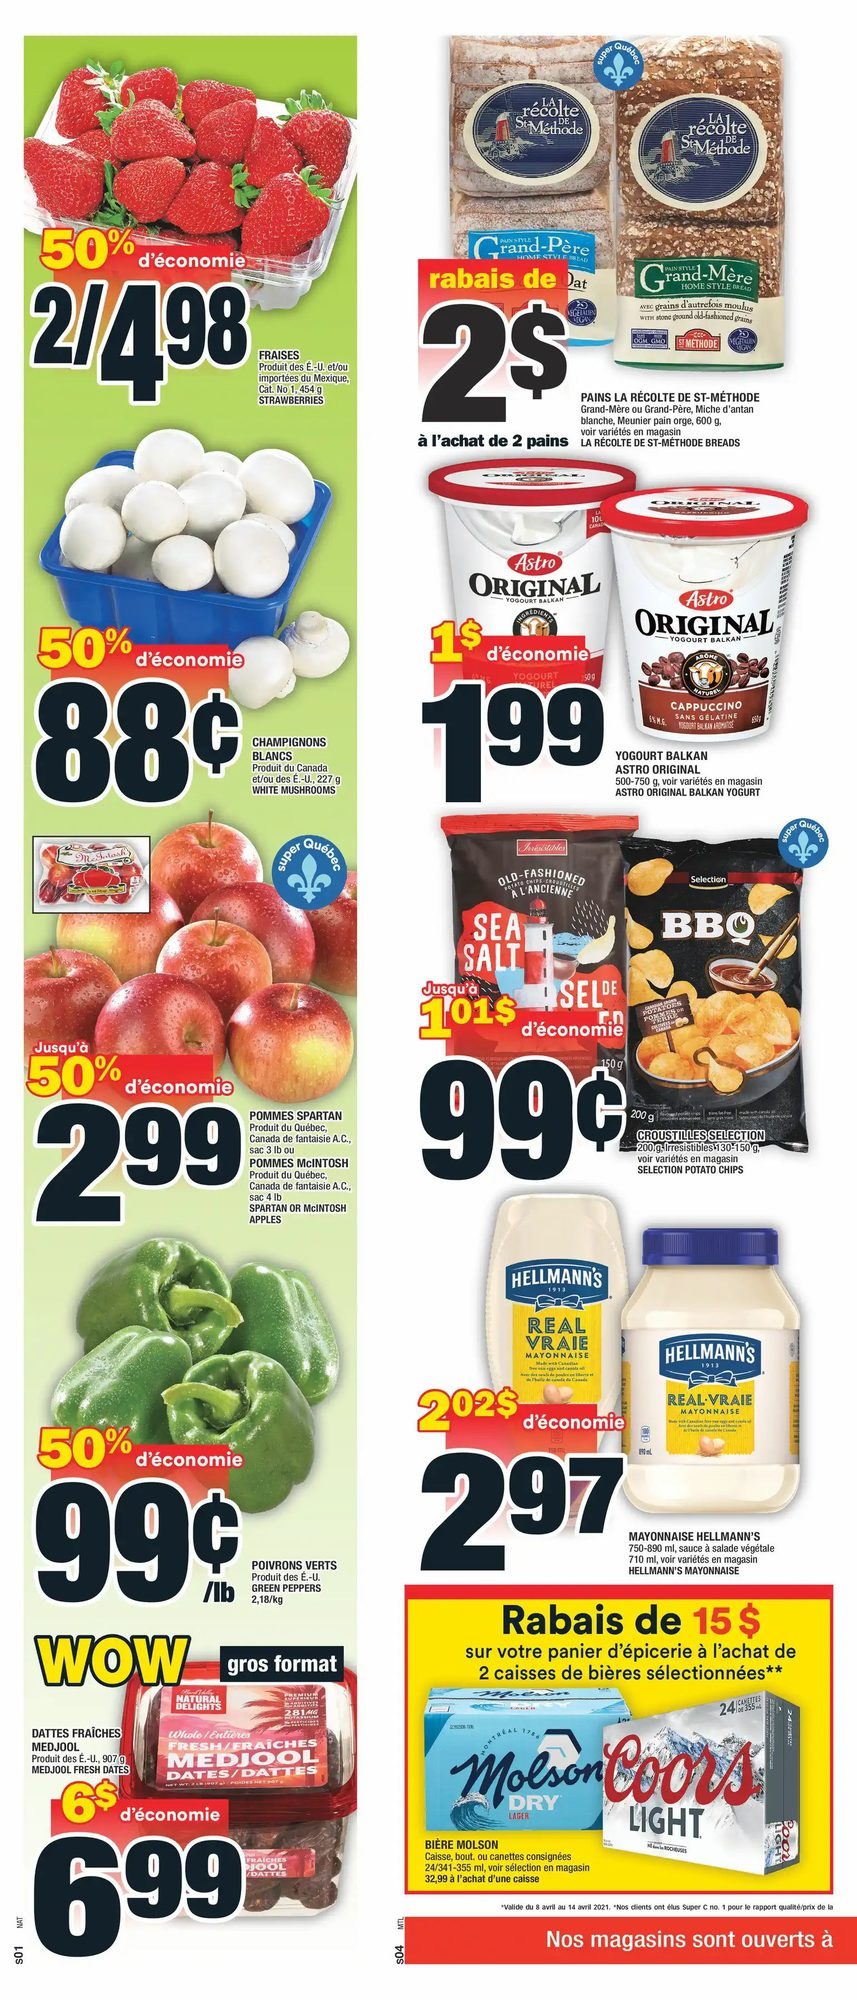 Super C - Weekly Flyer Specials - Page 2